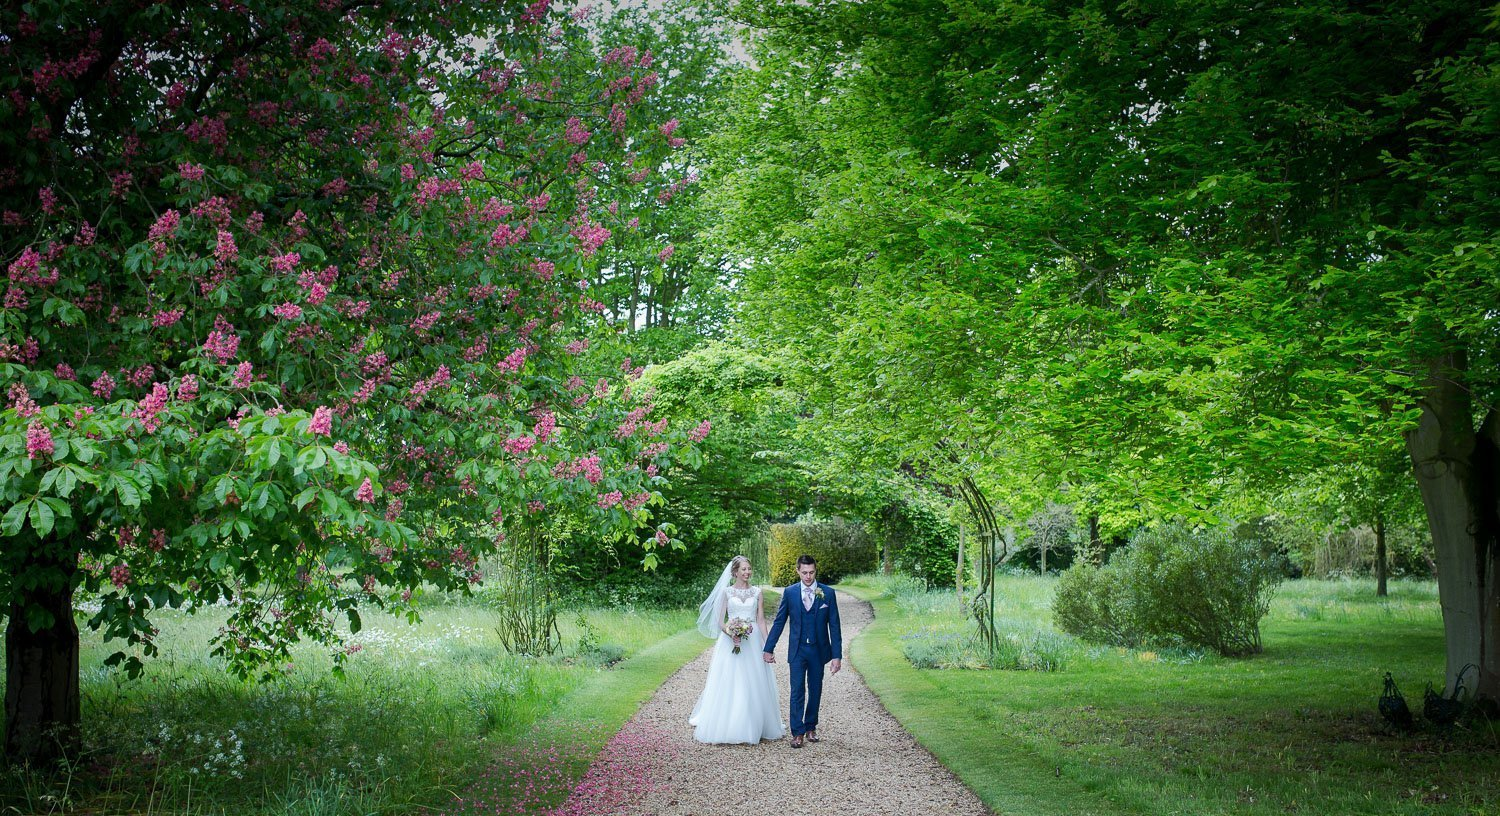 Brie and groom walking along Chippenham Wedding